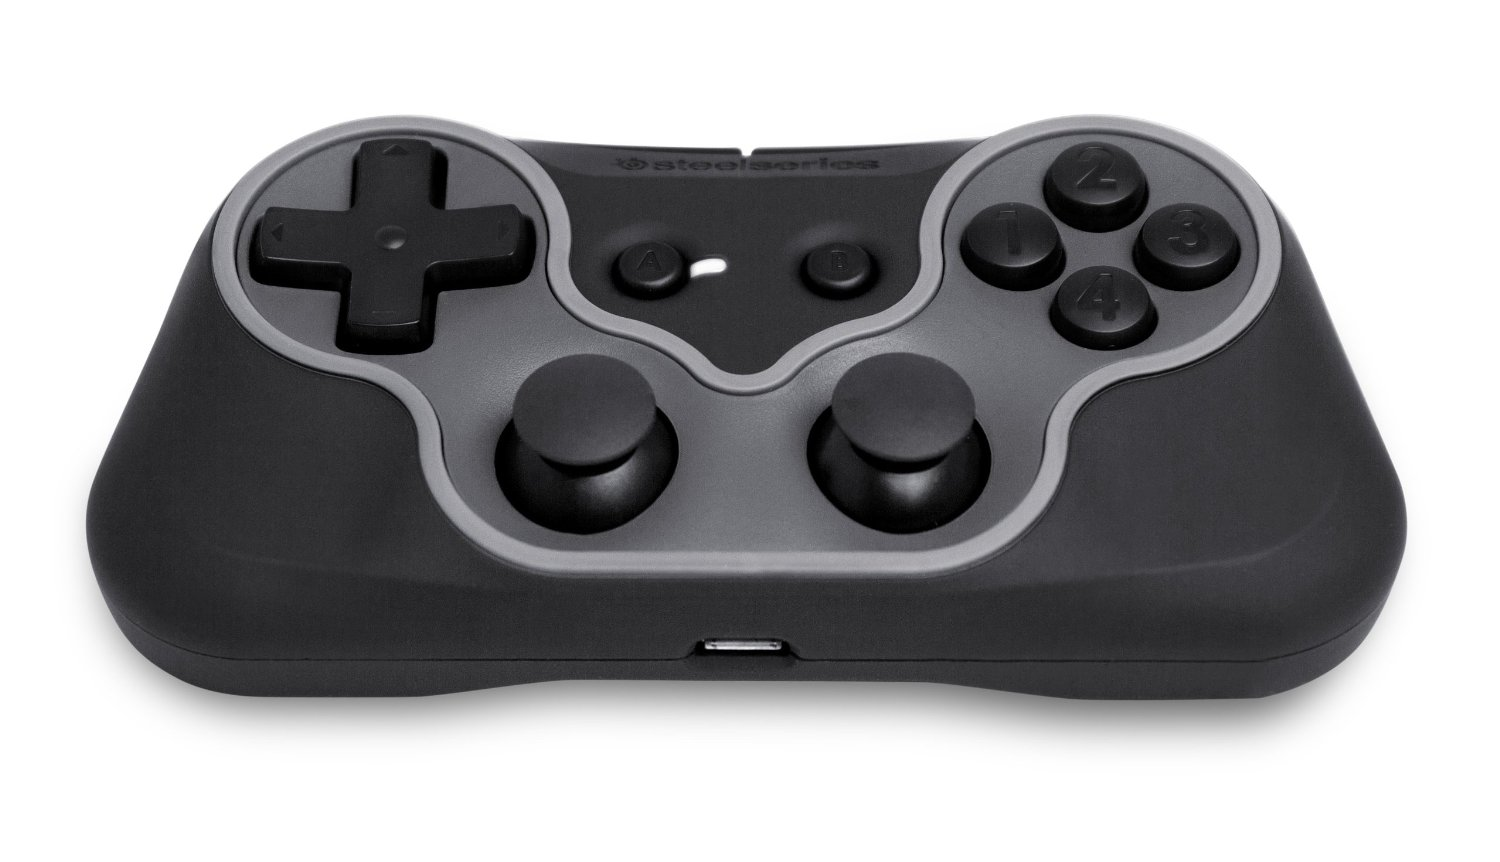 Steelseries Gamepad